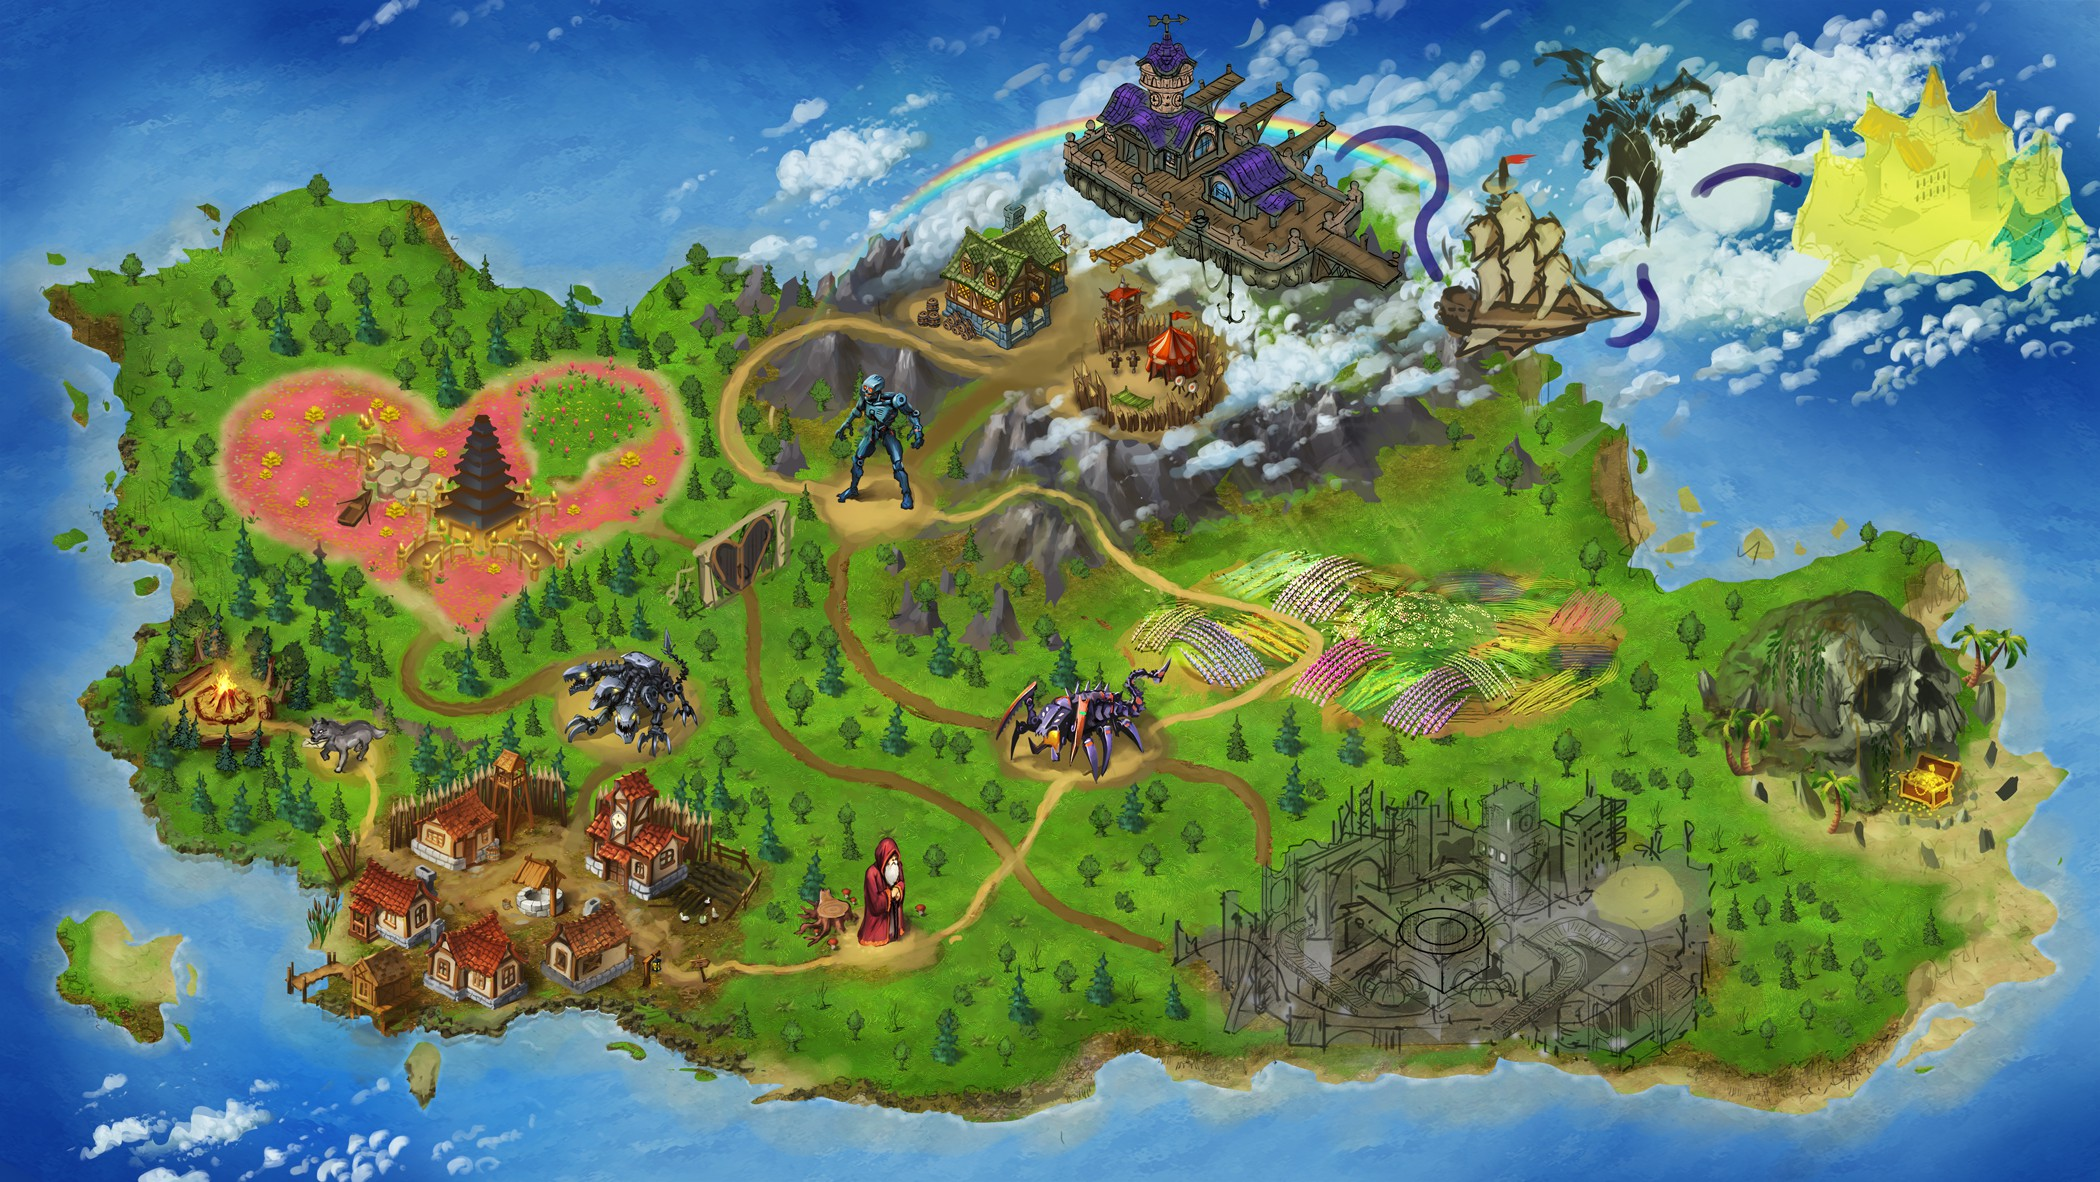 Epic Map for Heros eLearning Journey